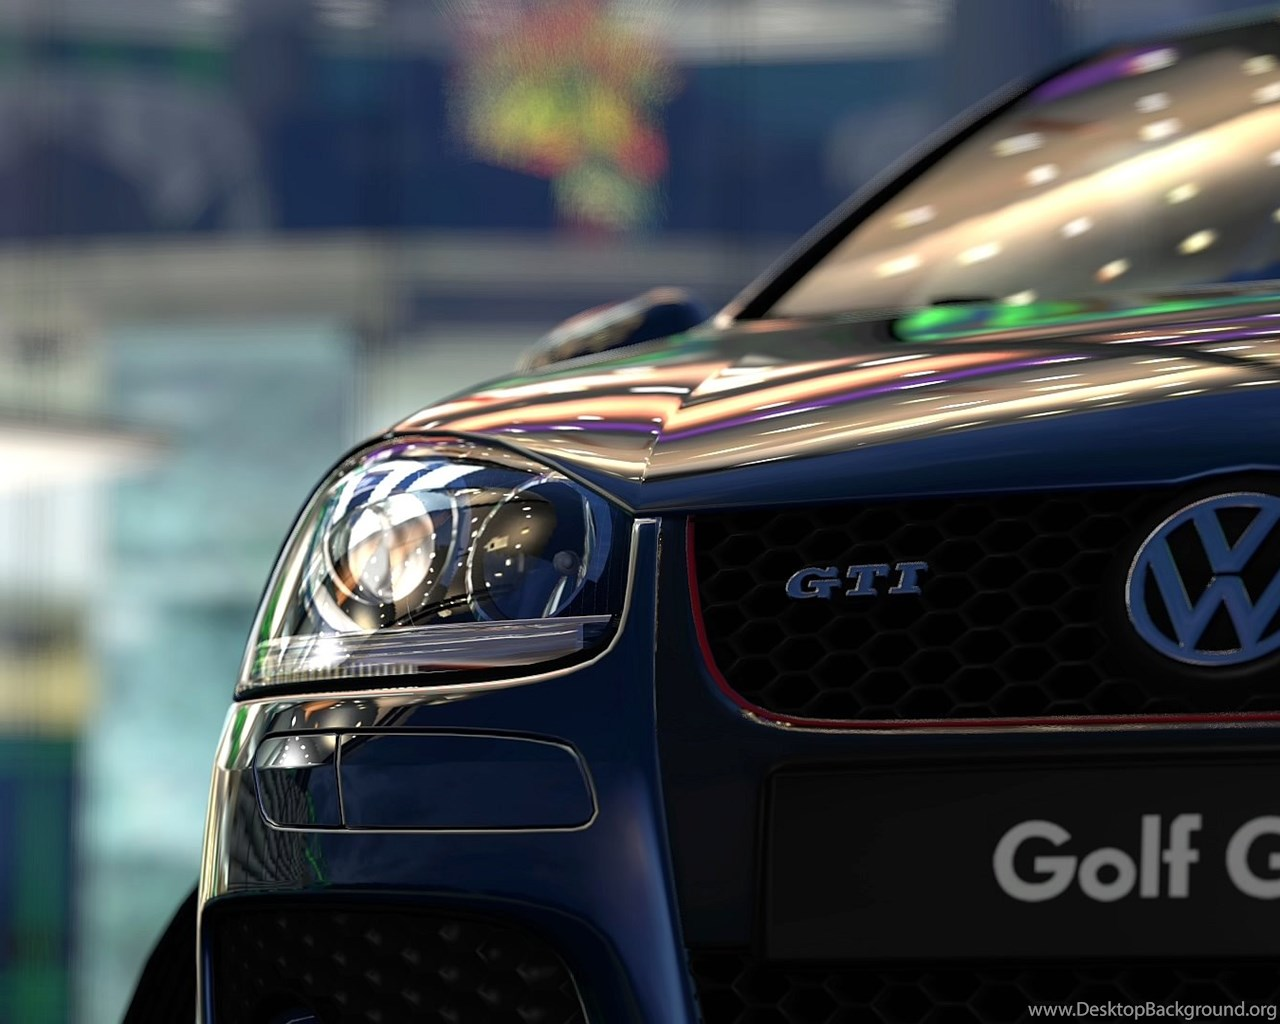 Wallpapers Vw Golf Vi Gti Tuning Gt V Red Bull Hangar Jpg